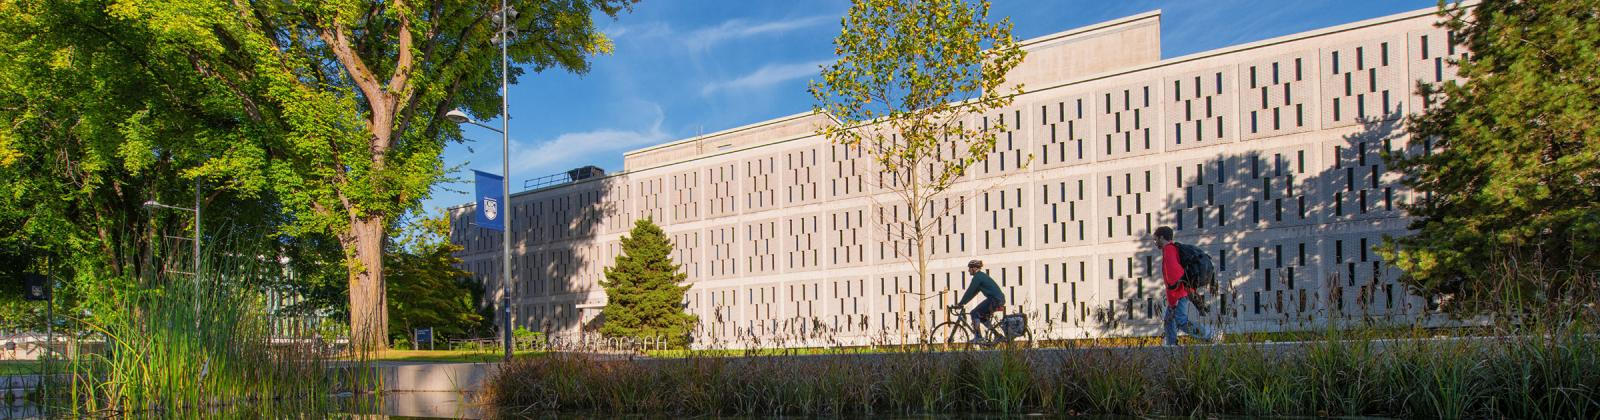 campus building with cyclists going by